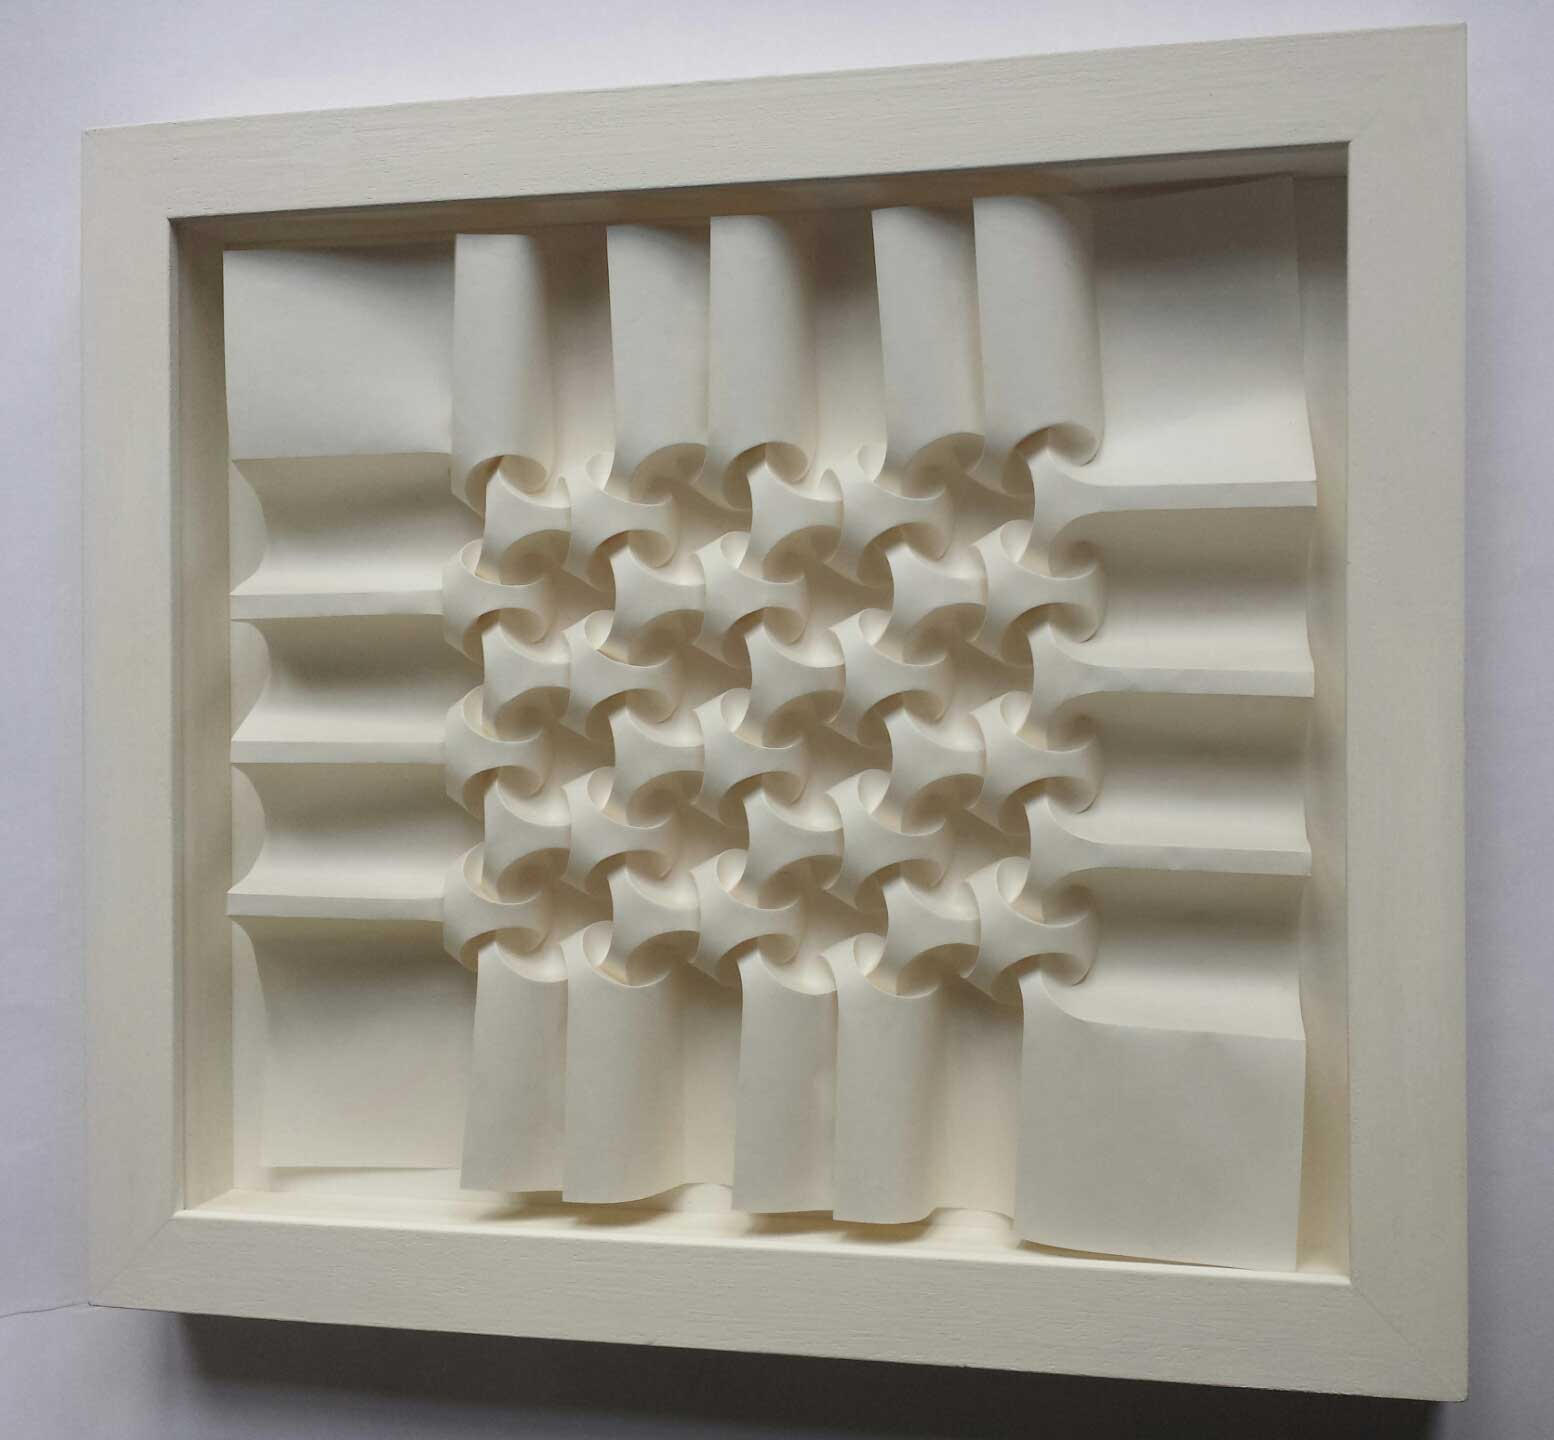 Paper Fold for sale by Polly Verity - Intersecting Orbs